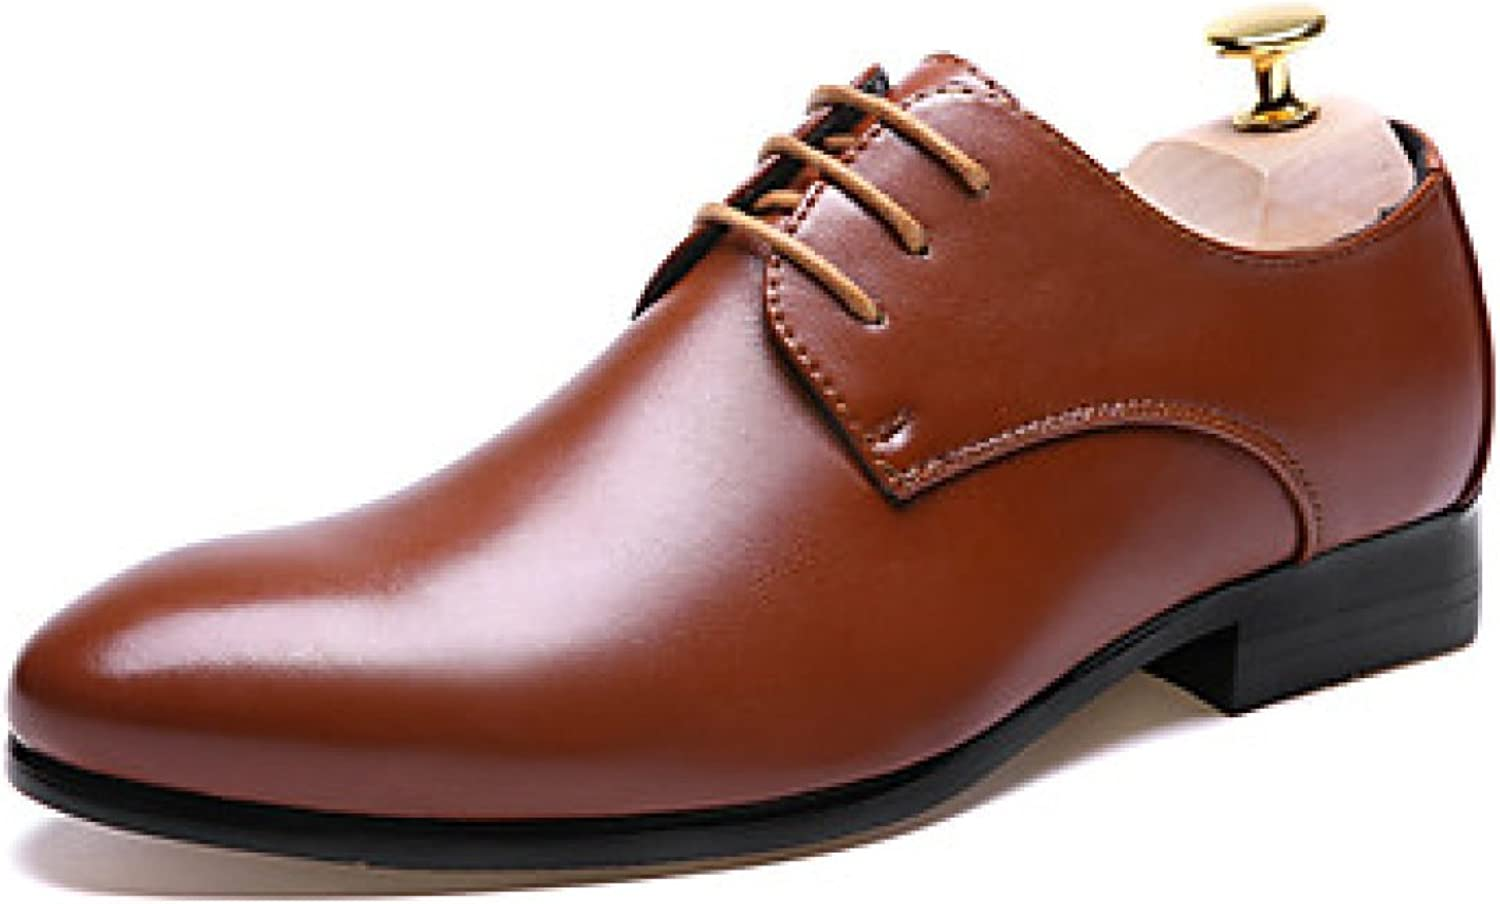 Men's Oxfords Spring Summer Formal shoes Leather Wedding Office Career Casual Party Evening Flat Heel Lace-up Black Brown